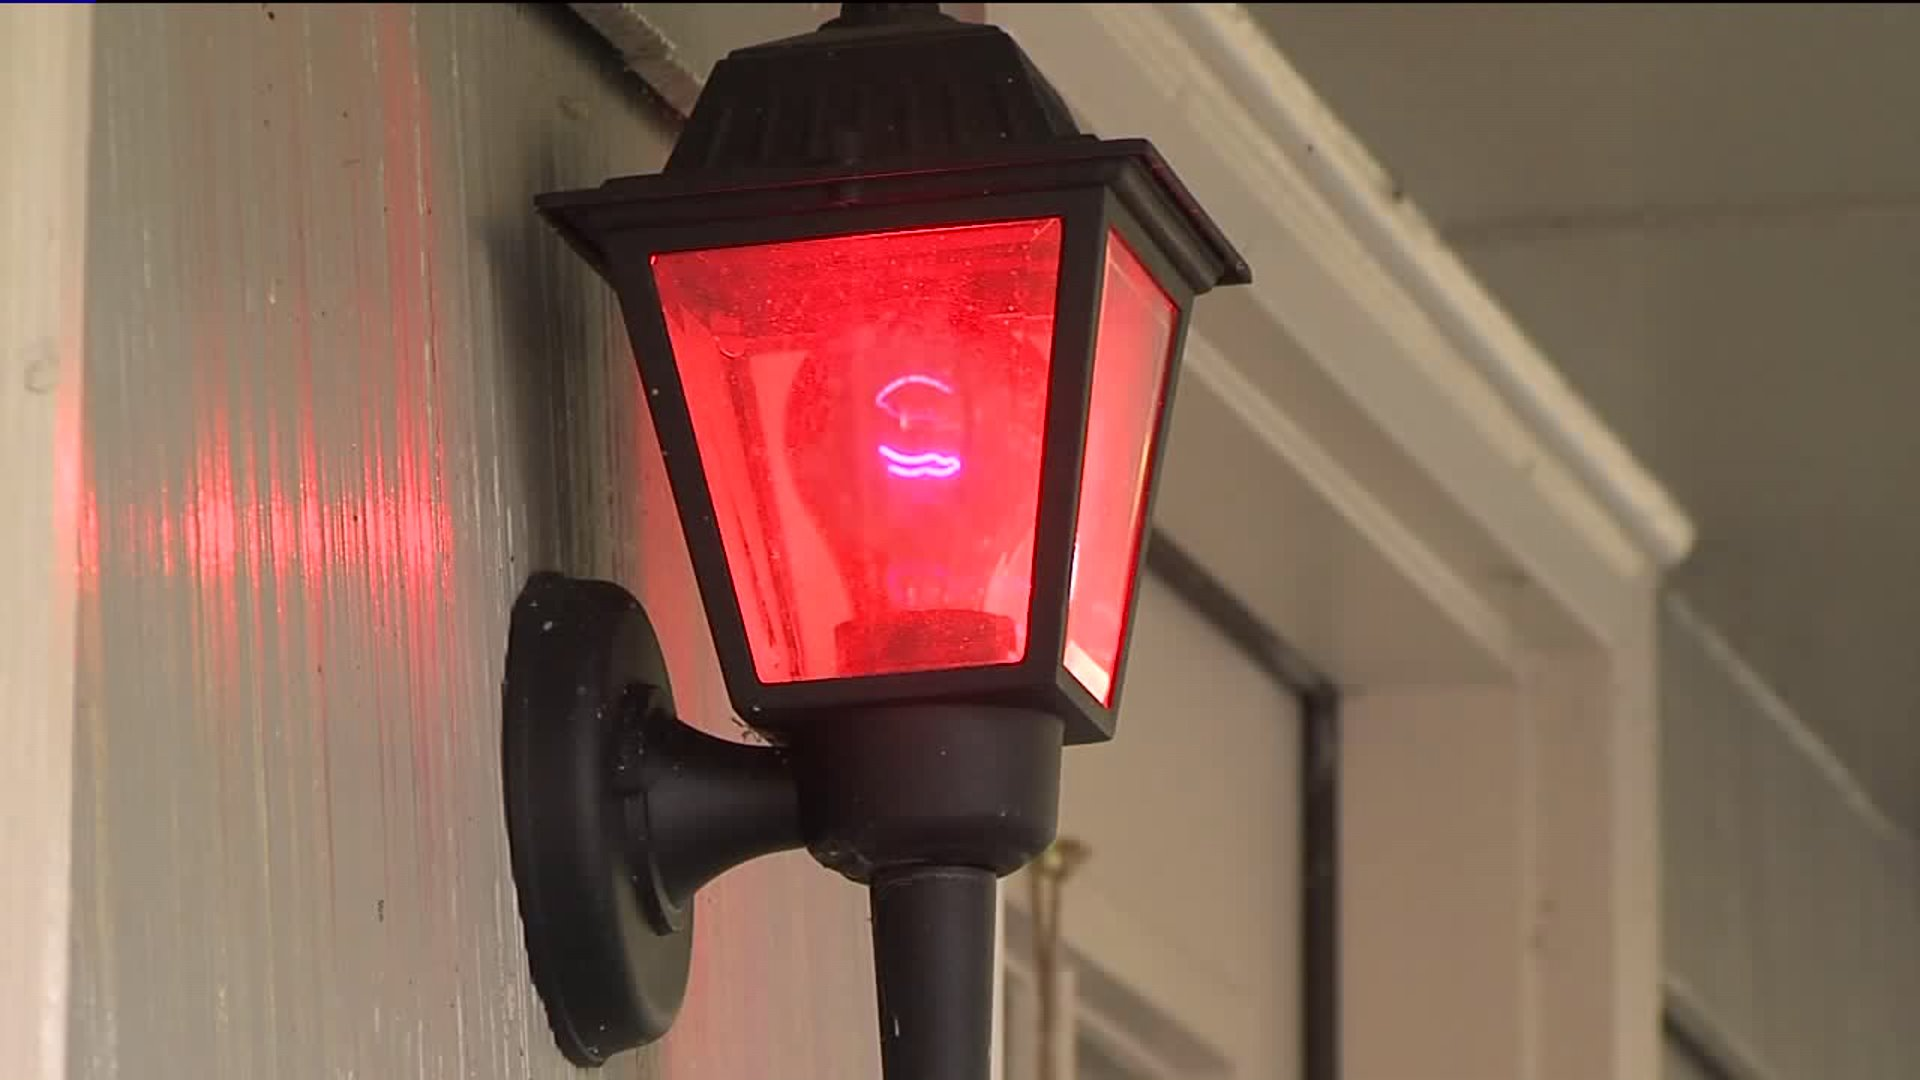 What Does The Red Porch Light and Other Colors Mean?